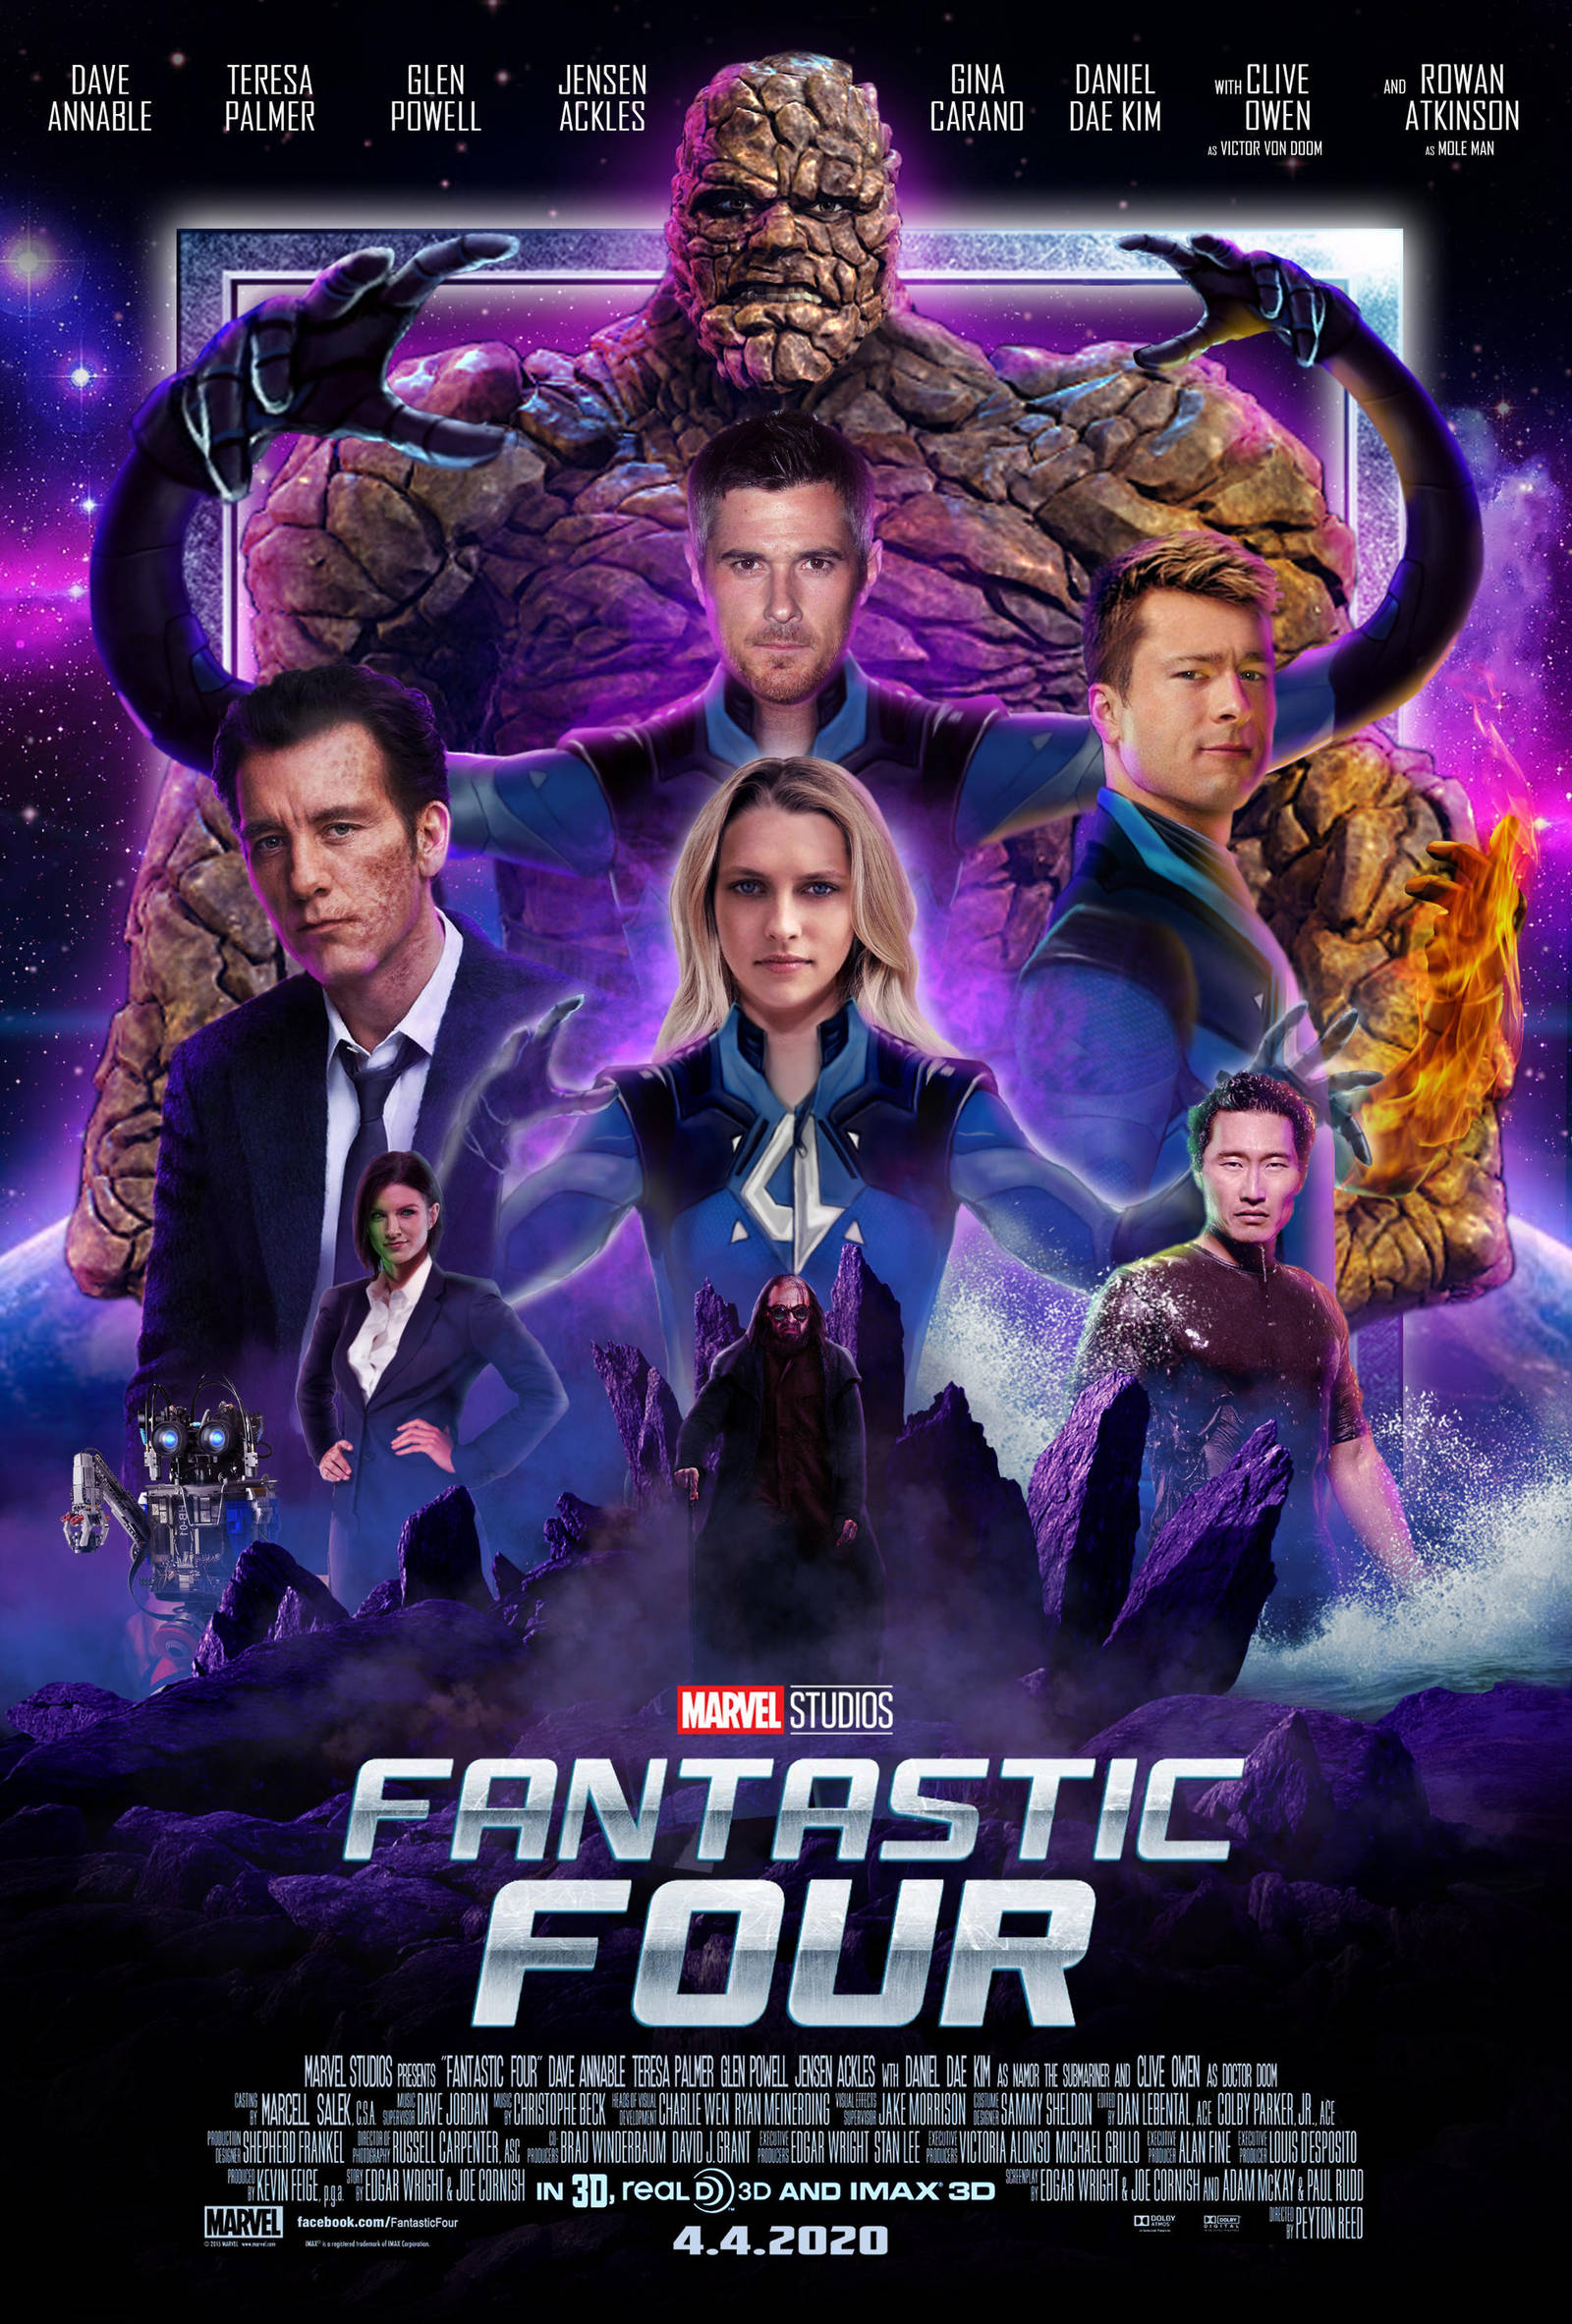 mcu fantastic four movie poster 3 by marcellsalek26 on